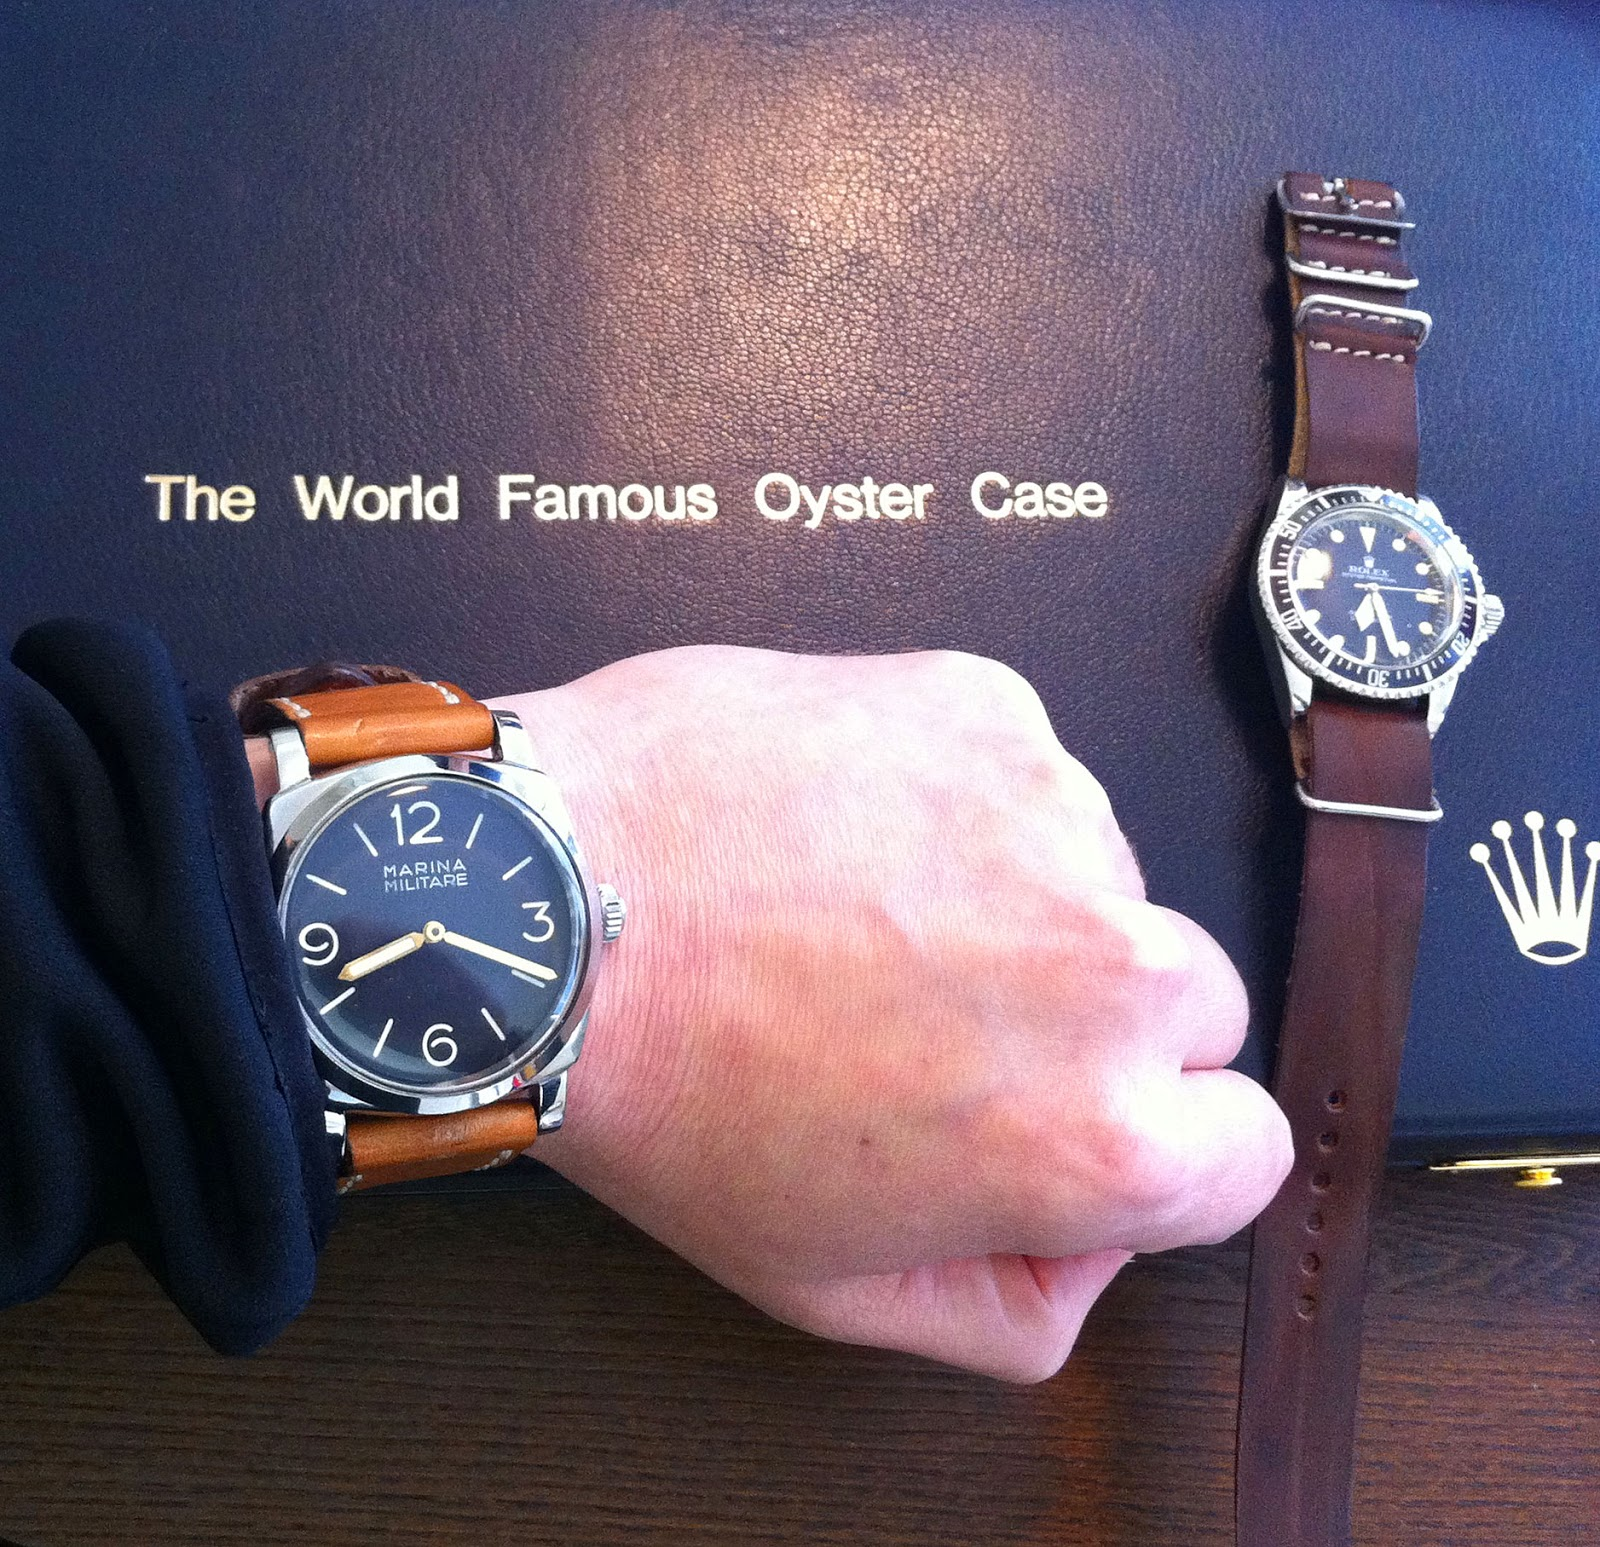 Welcome To Paneraimagazinecom Home Of Jakes Panerai World 2014 The Watch Diagram A Rolex Below Shows Case In Detail Photo 8mm Brevet Winding Crown Which Clearly Has Logo On It Main Difference Between Original And All New